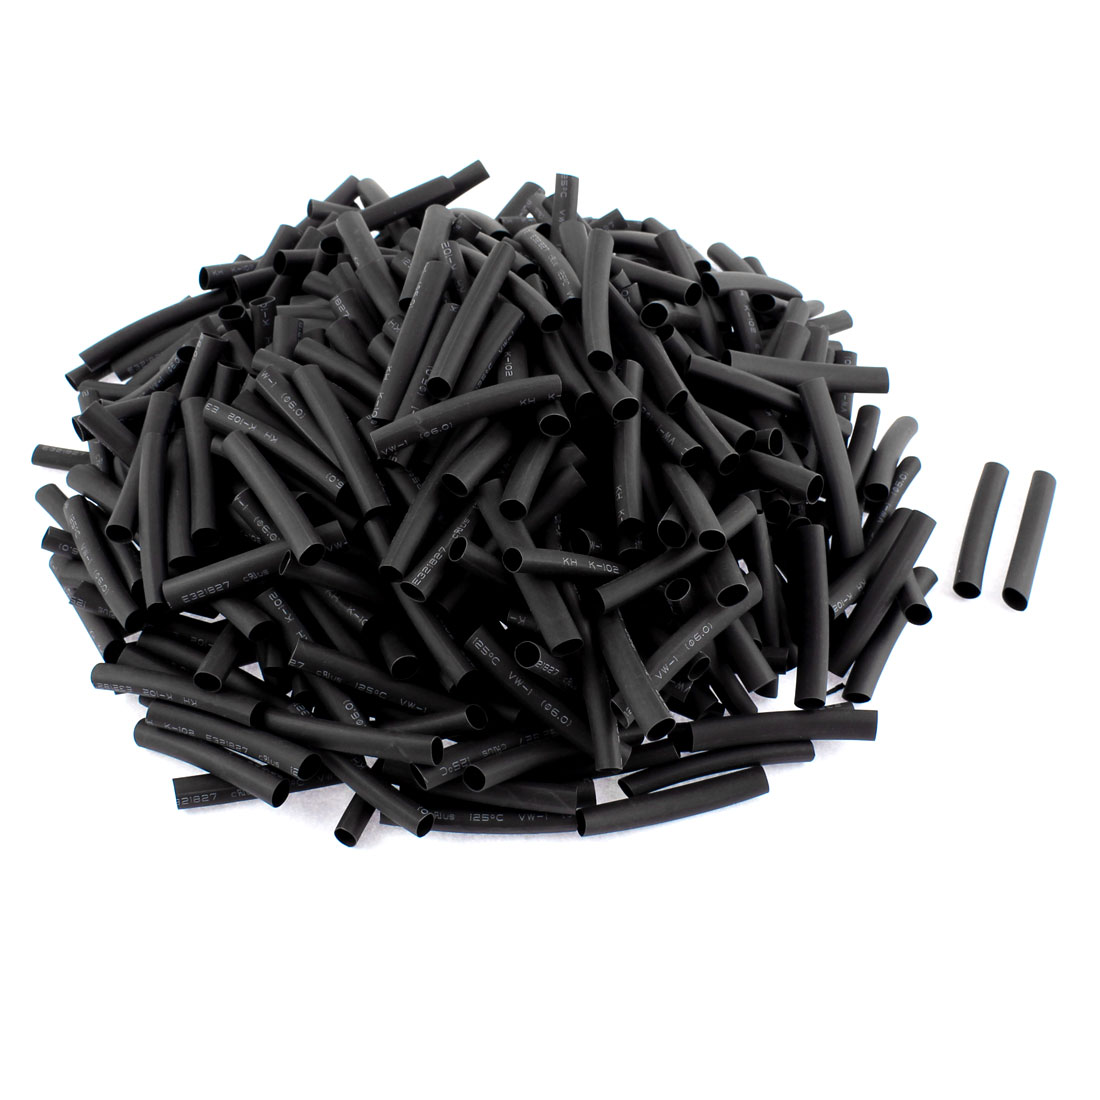 Electrical Connection Cable Sleeve 50mm Length Heat Shrink Tubing Black 430Pcs